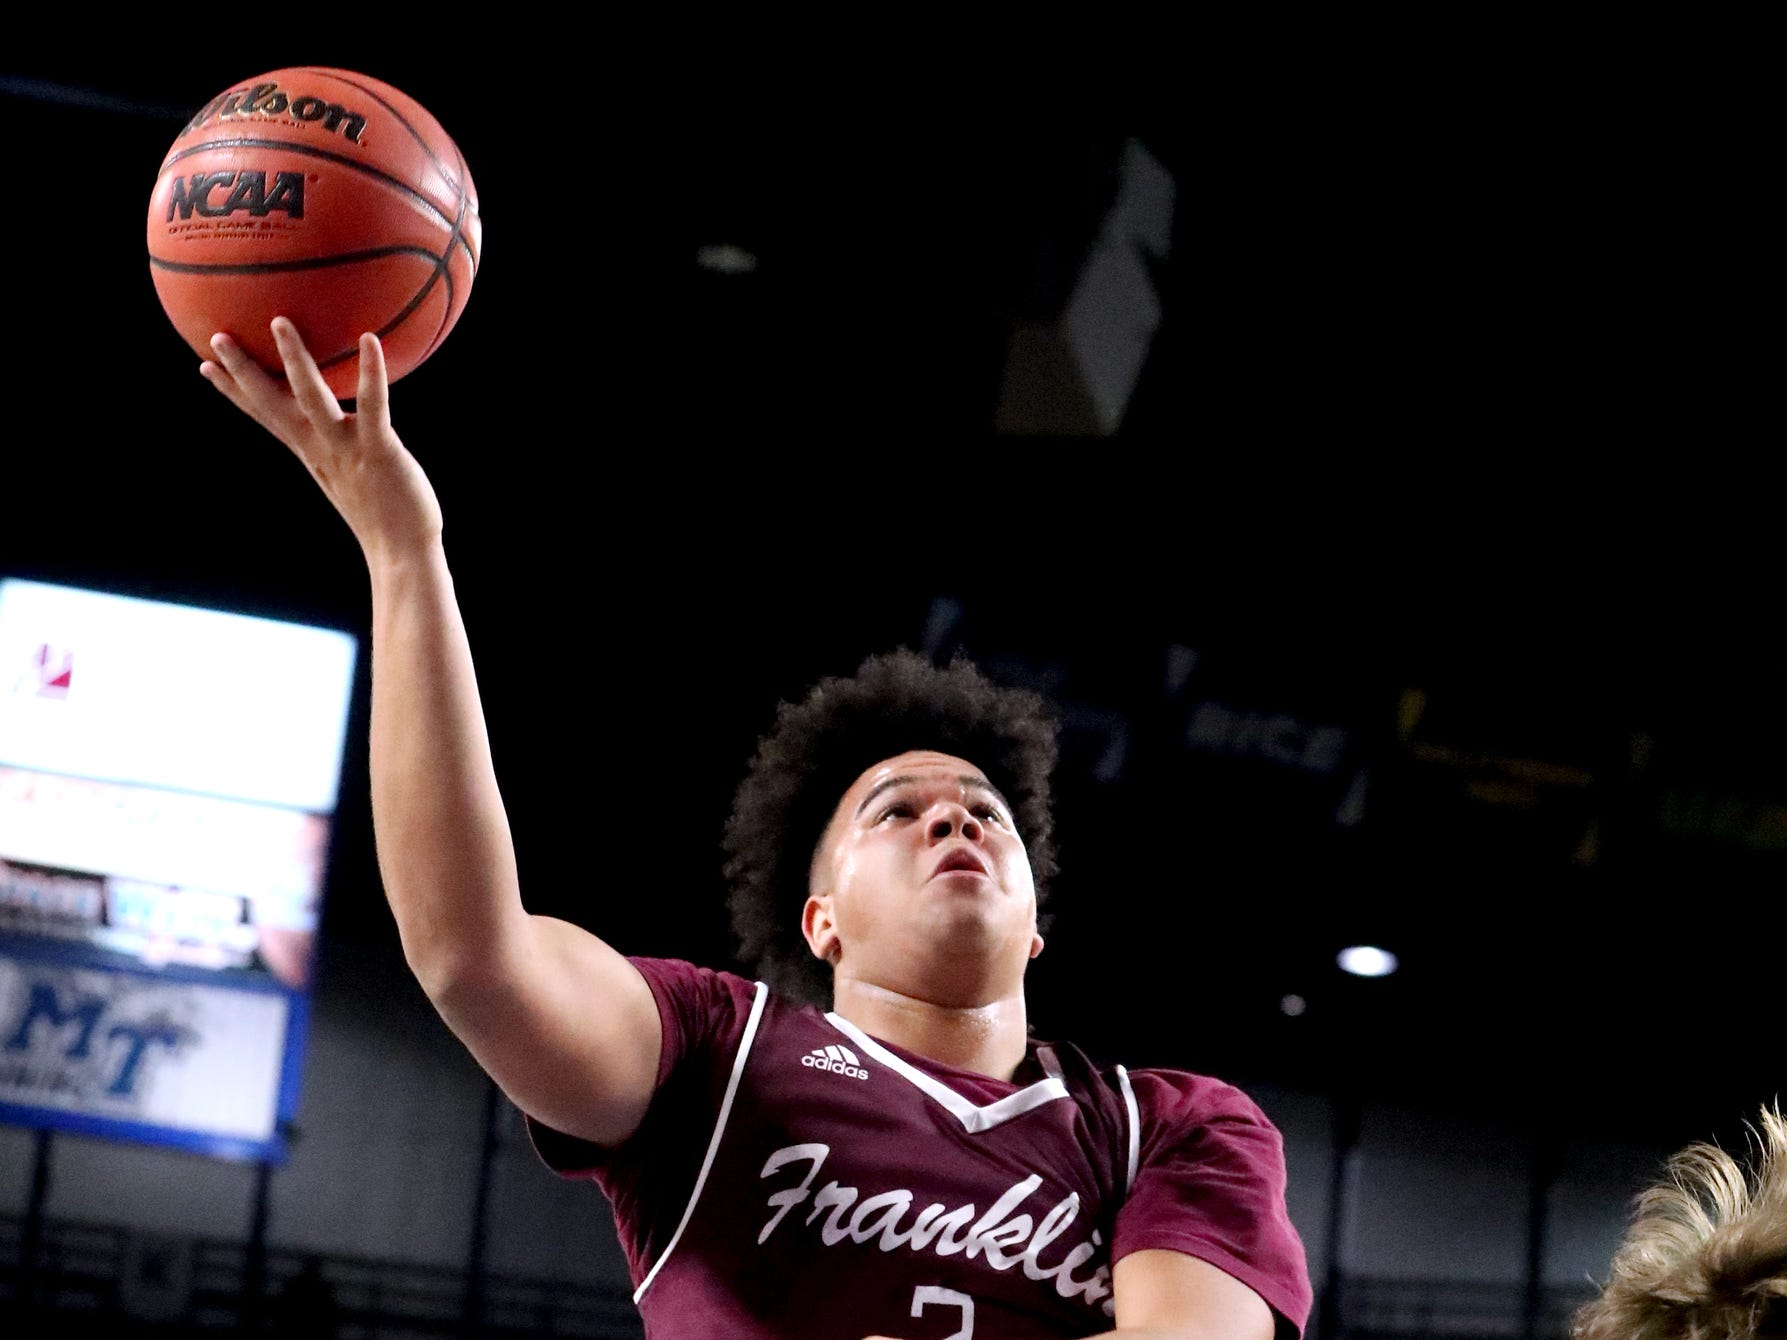 Franklin's Ahsharri Haynesworth (2) shoots the ball as Bearden's Kordell Kah (24) falls to the floor during the quarterfinal round of the TSSAA Class AAA Boys State Tournament, on Wednesday, March 13, 2019, at Murphy Center in Murfreesboro, Tenn.